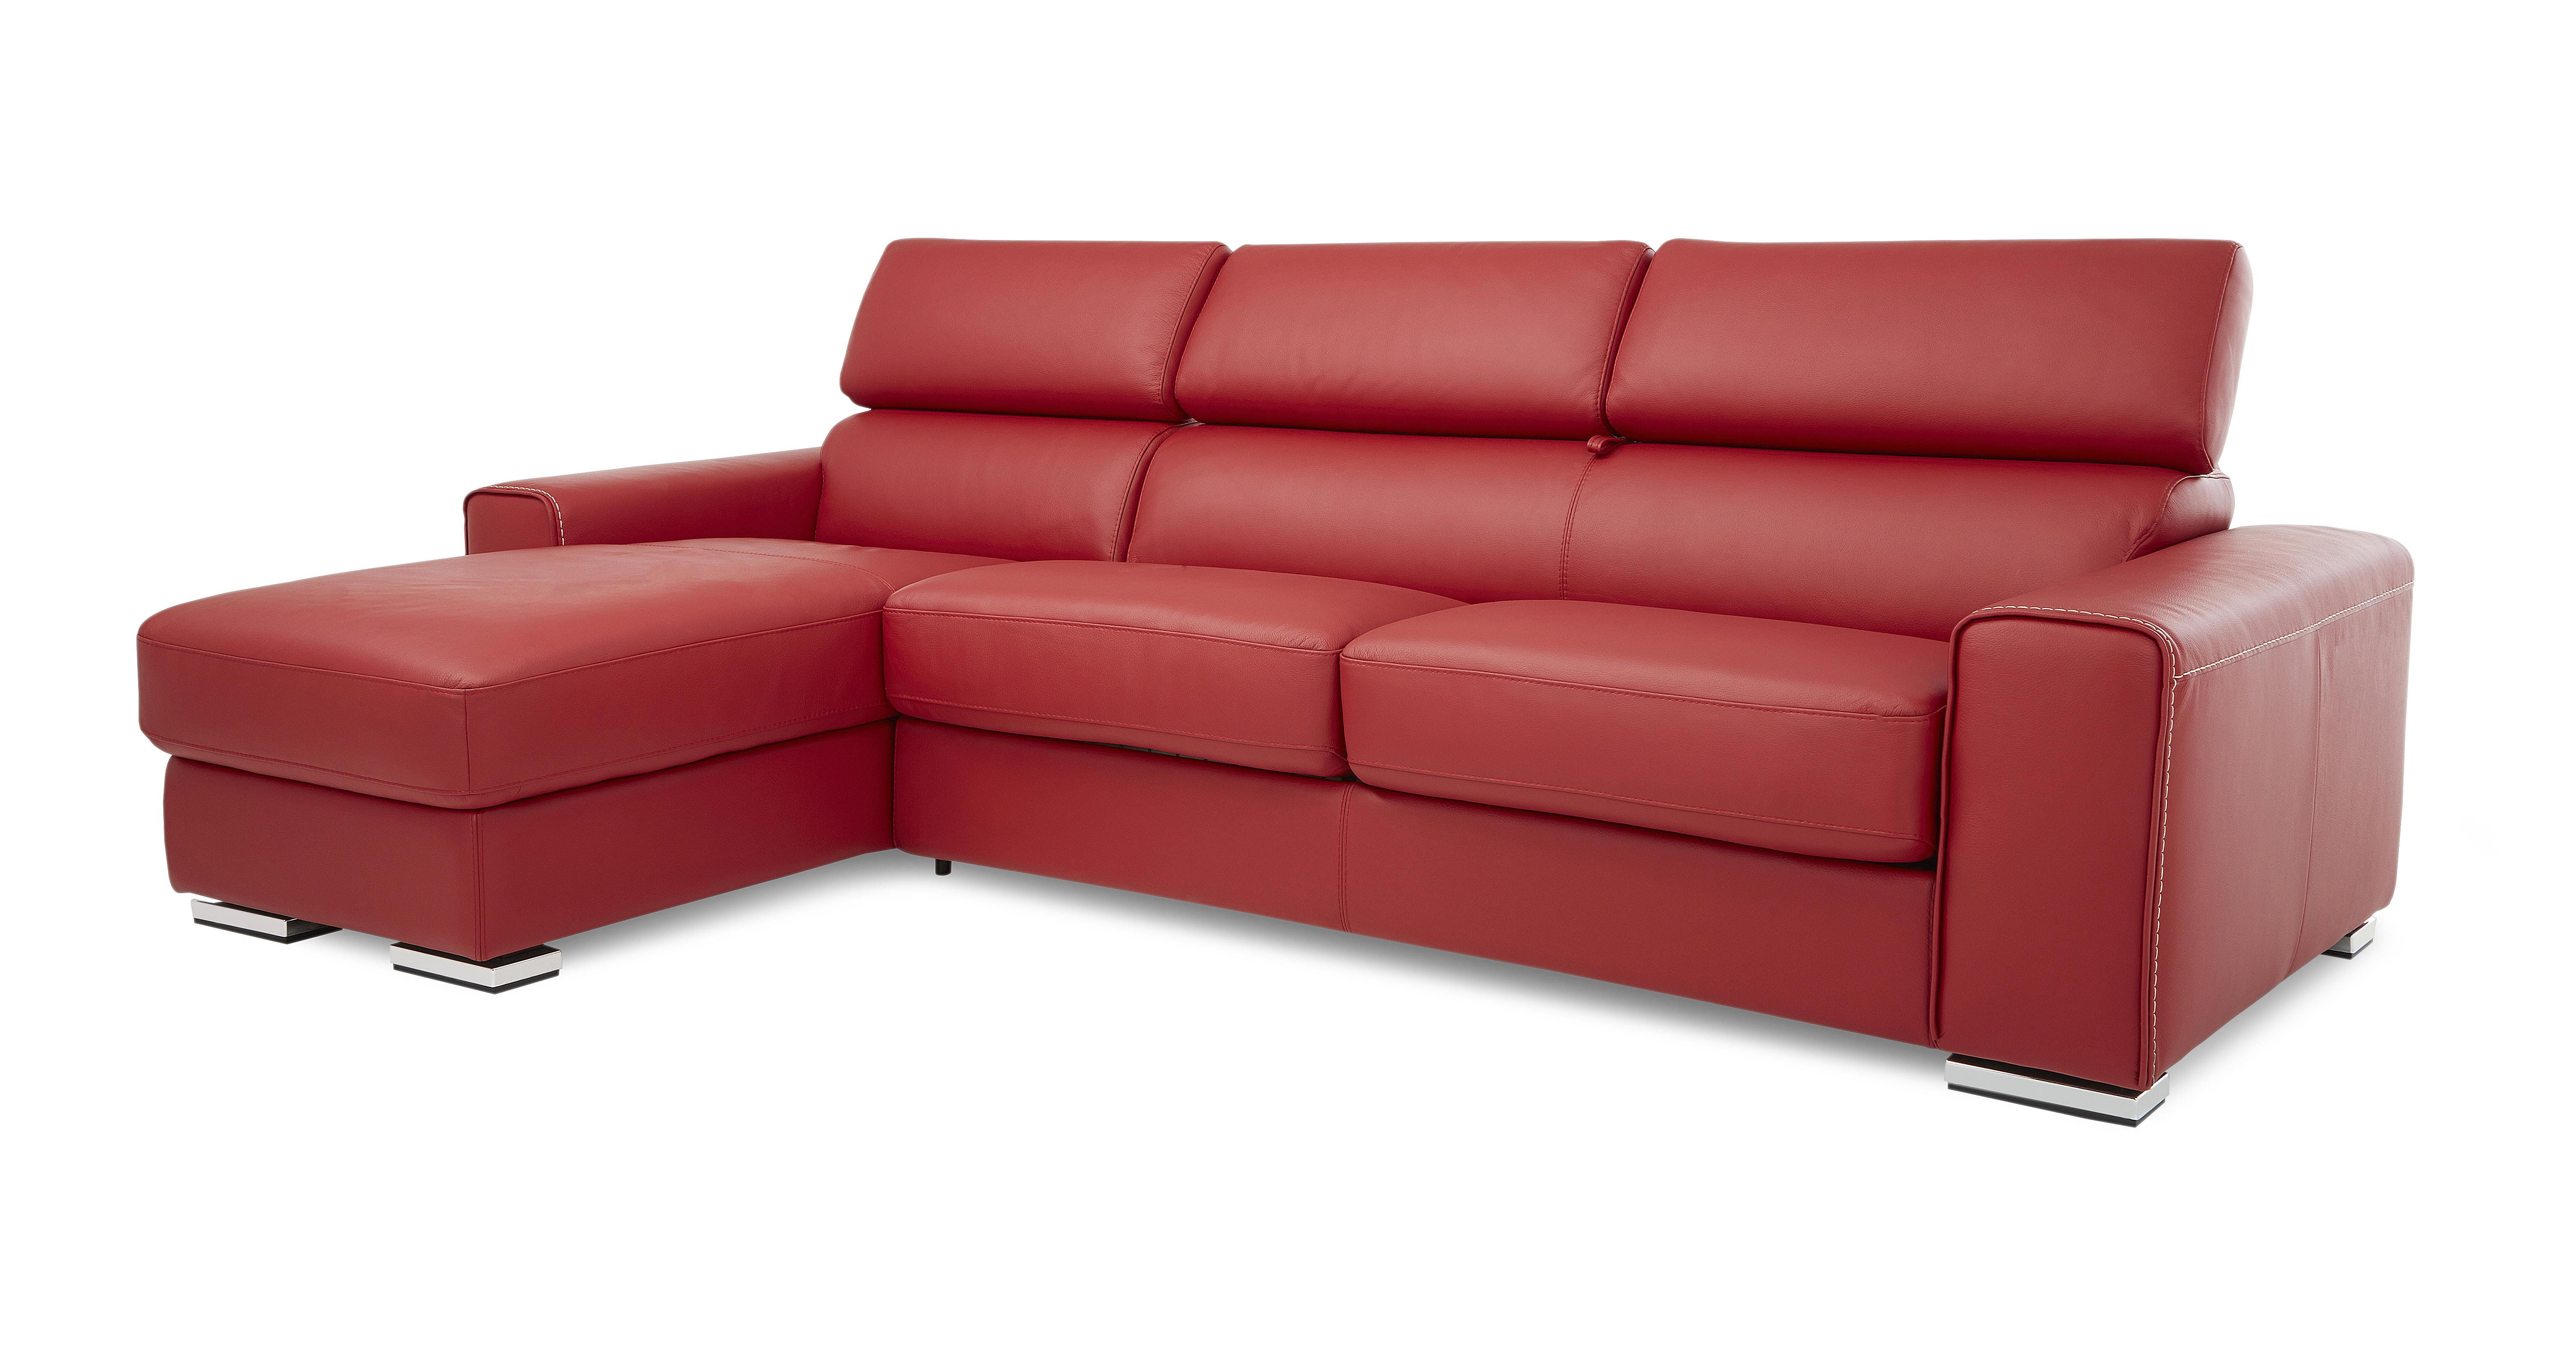 Dfs brown leather chaise sofa for Brown leather chaise